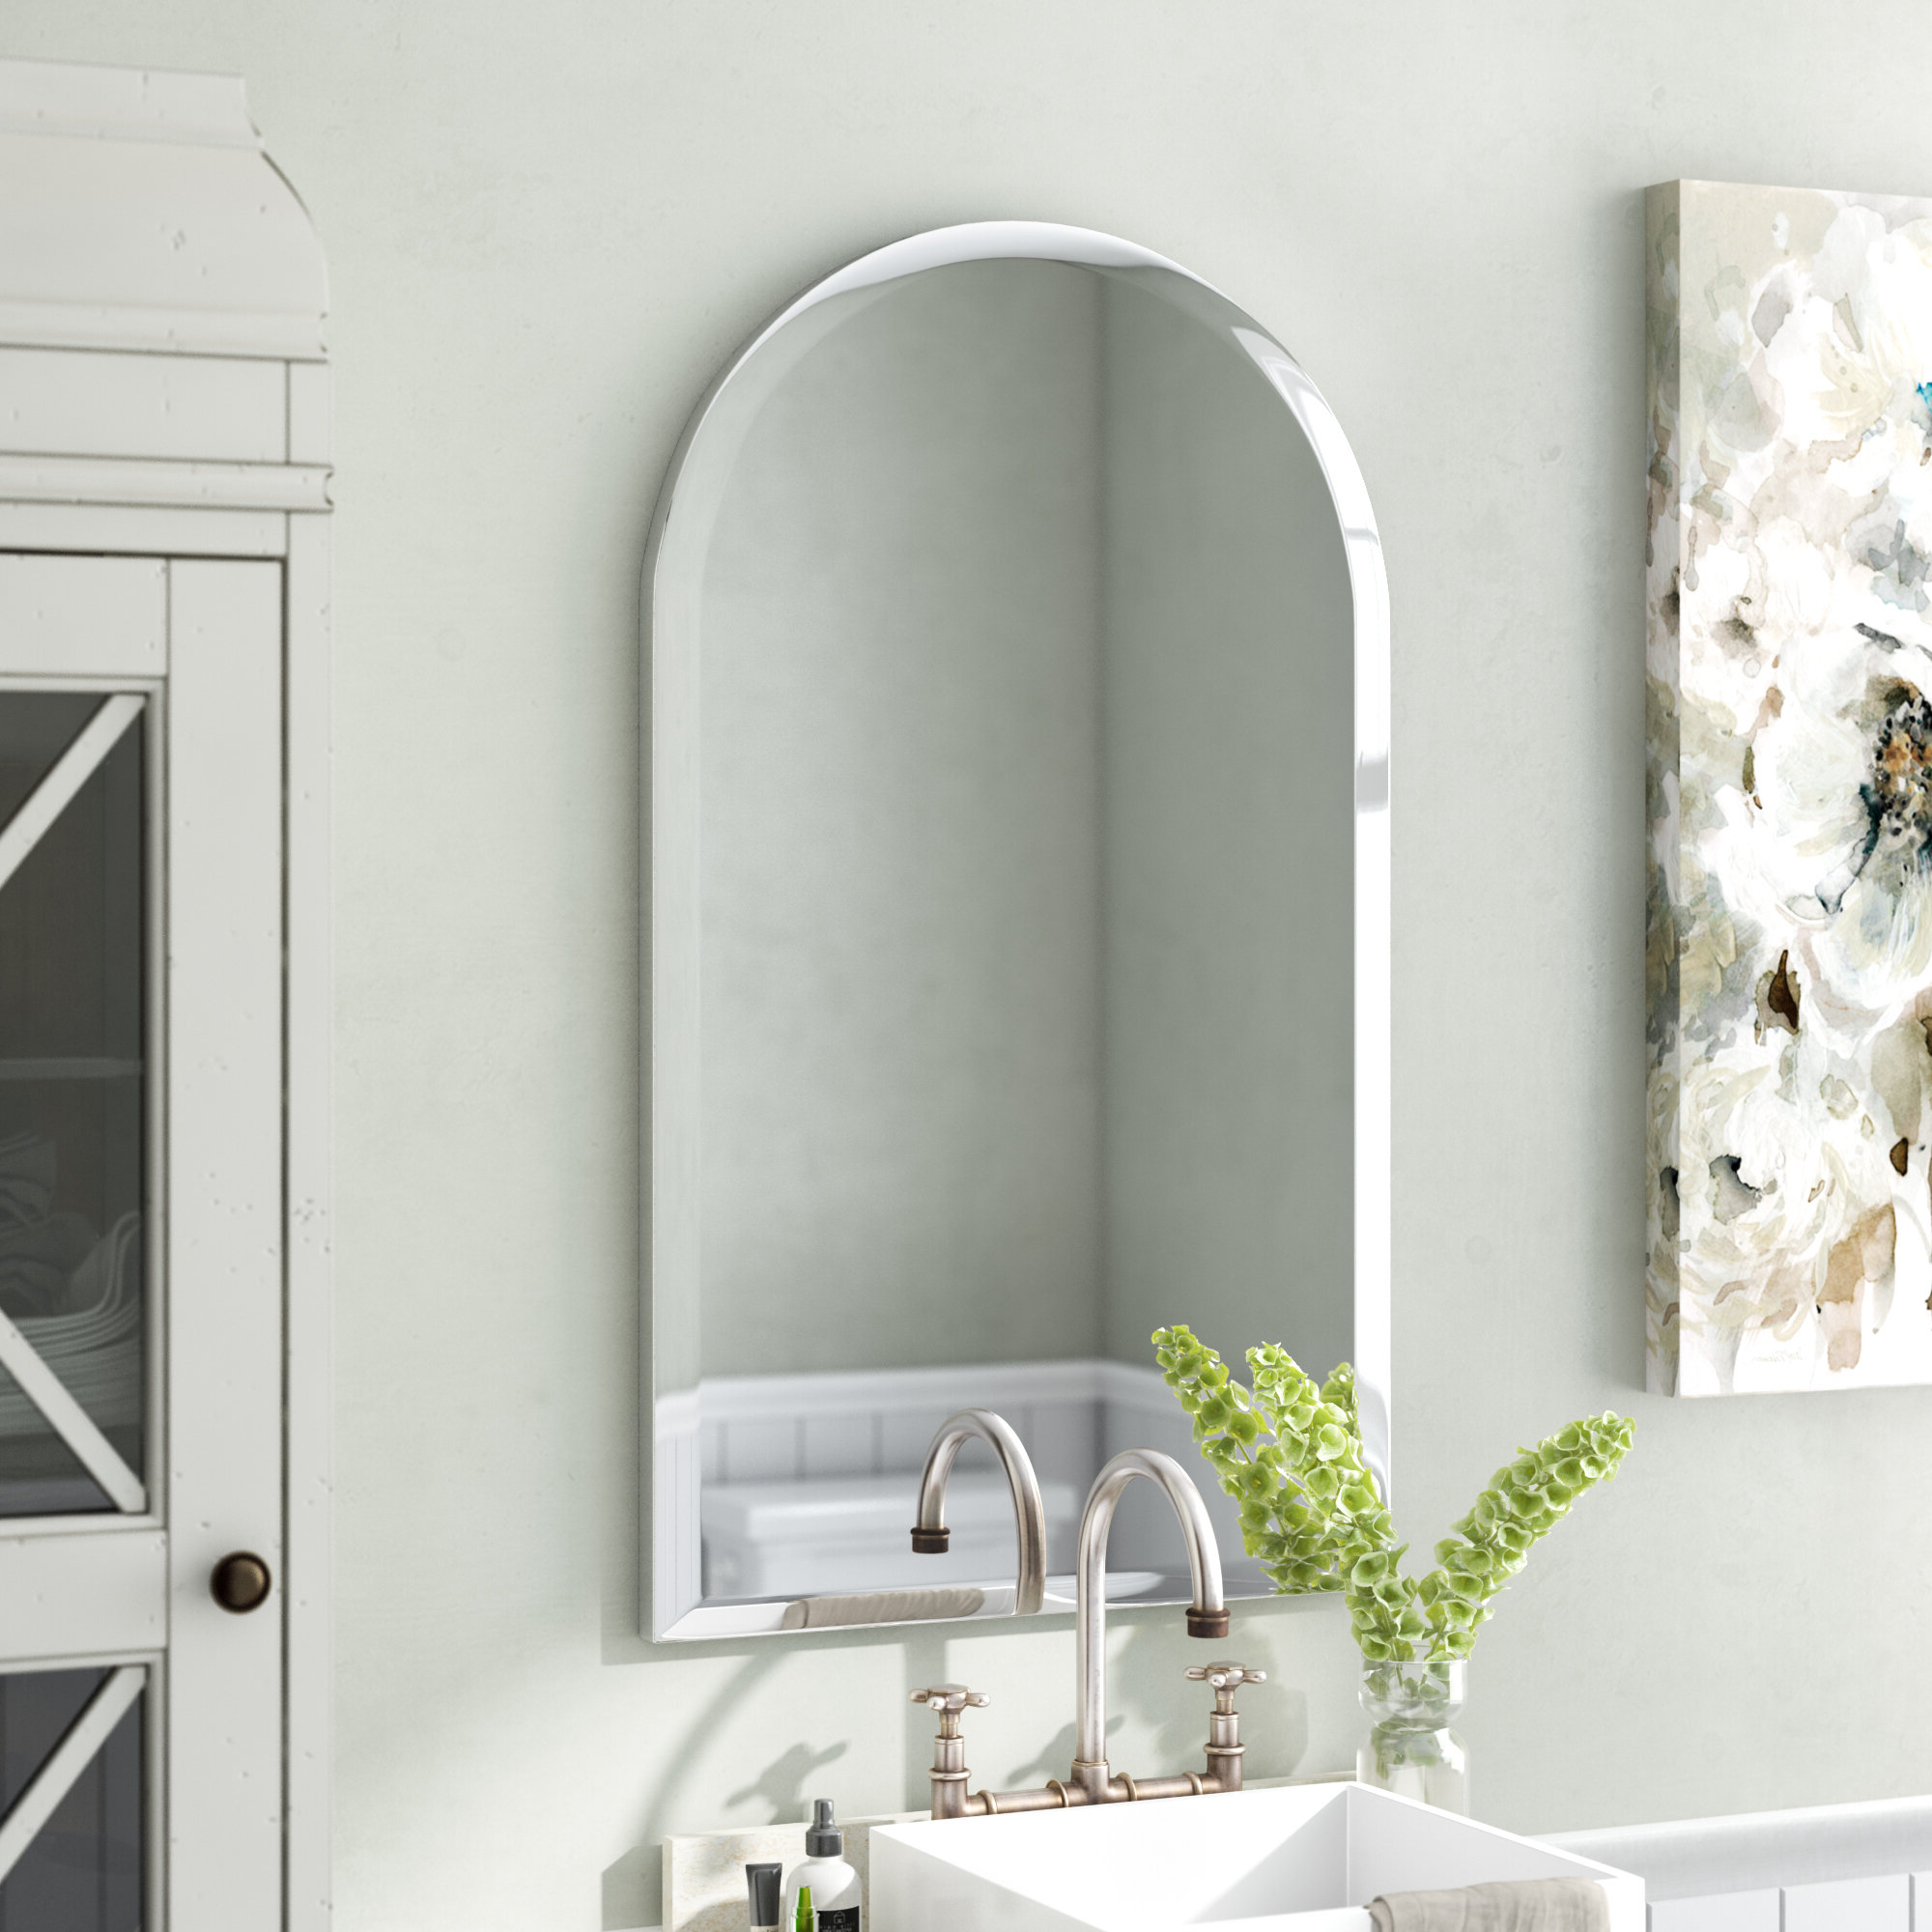 Titcomb Frameless Arched Wall Mirror Within 2020 Thornbury Oval Bevel Frameless Wall Mirrors (View 17 of 20)